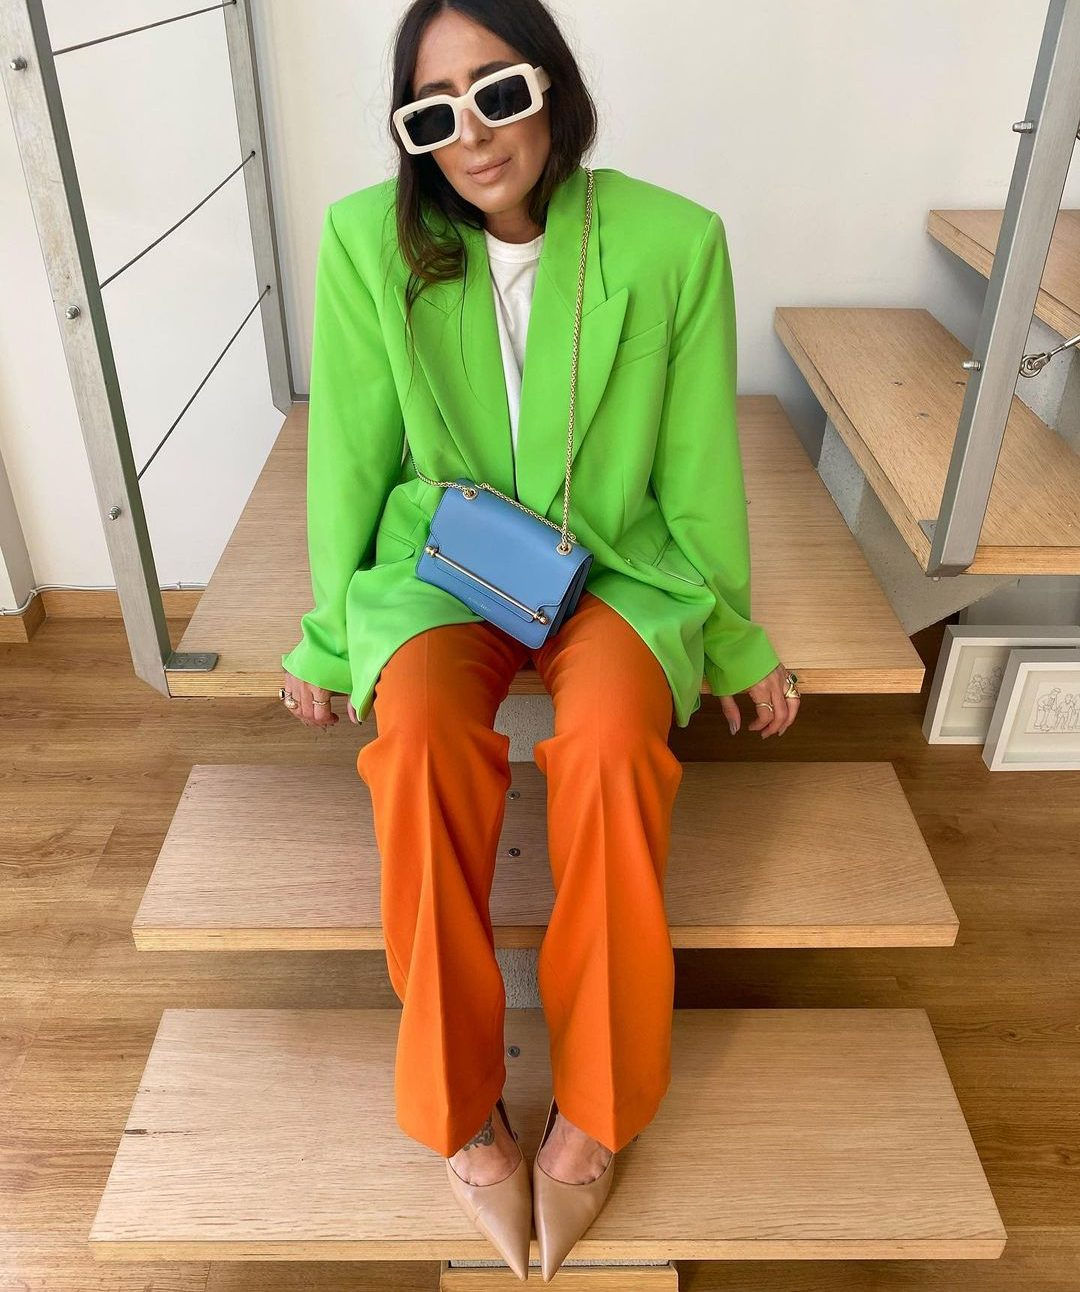 @laura_eguizabal wears neon green blazer and orange trousers.